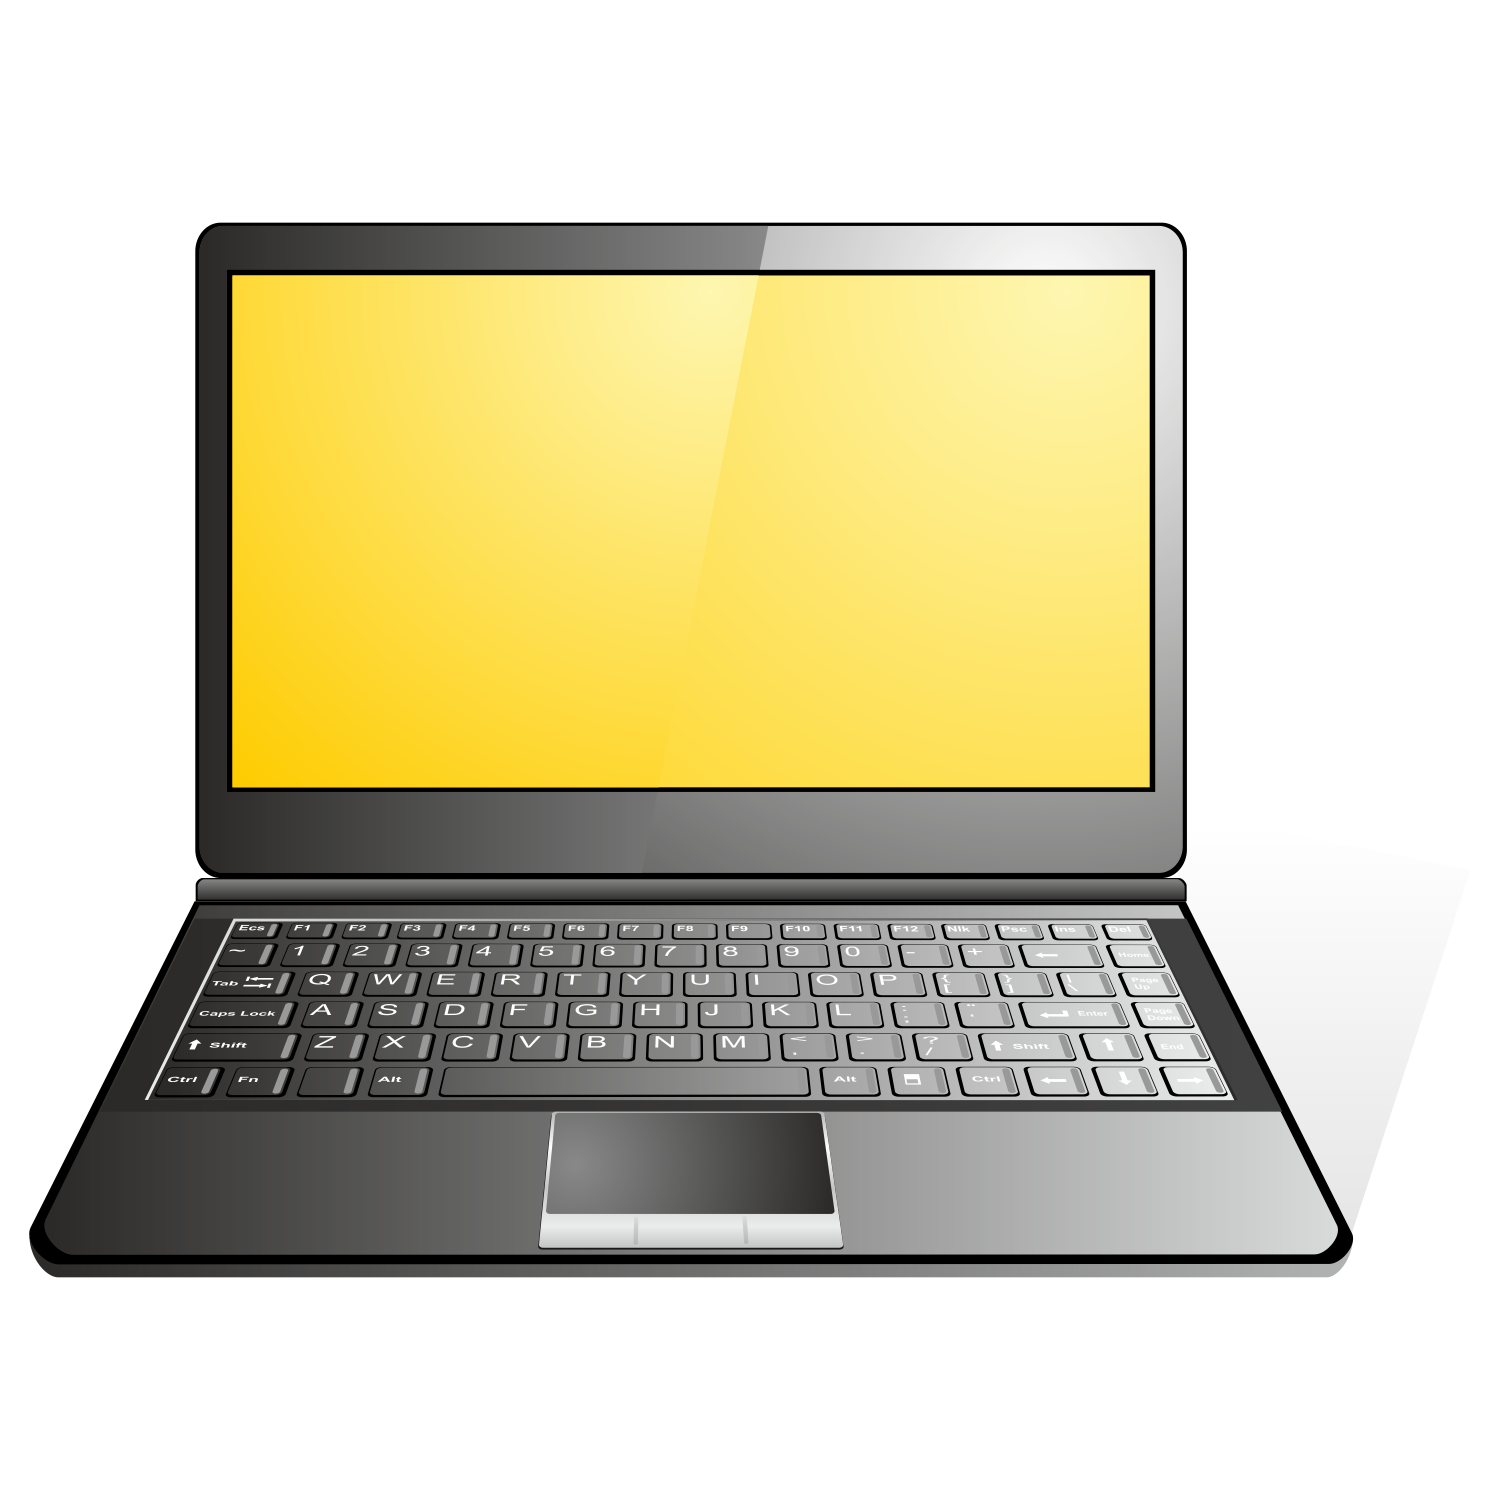 Save Png Laptop image #19514